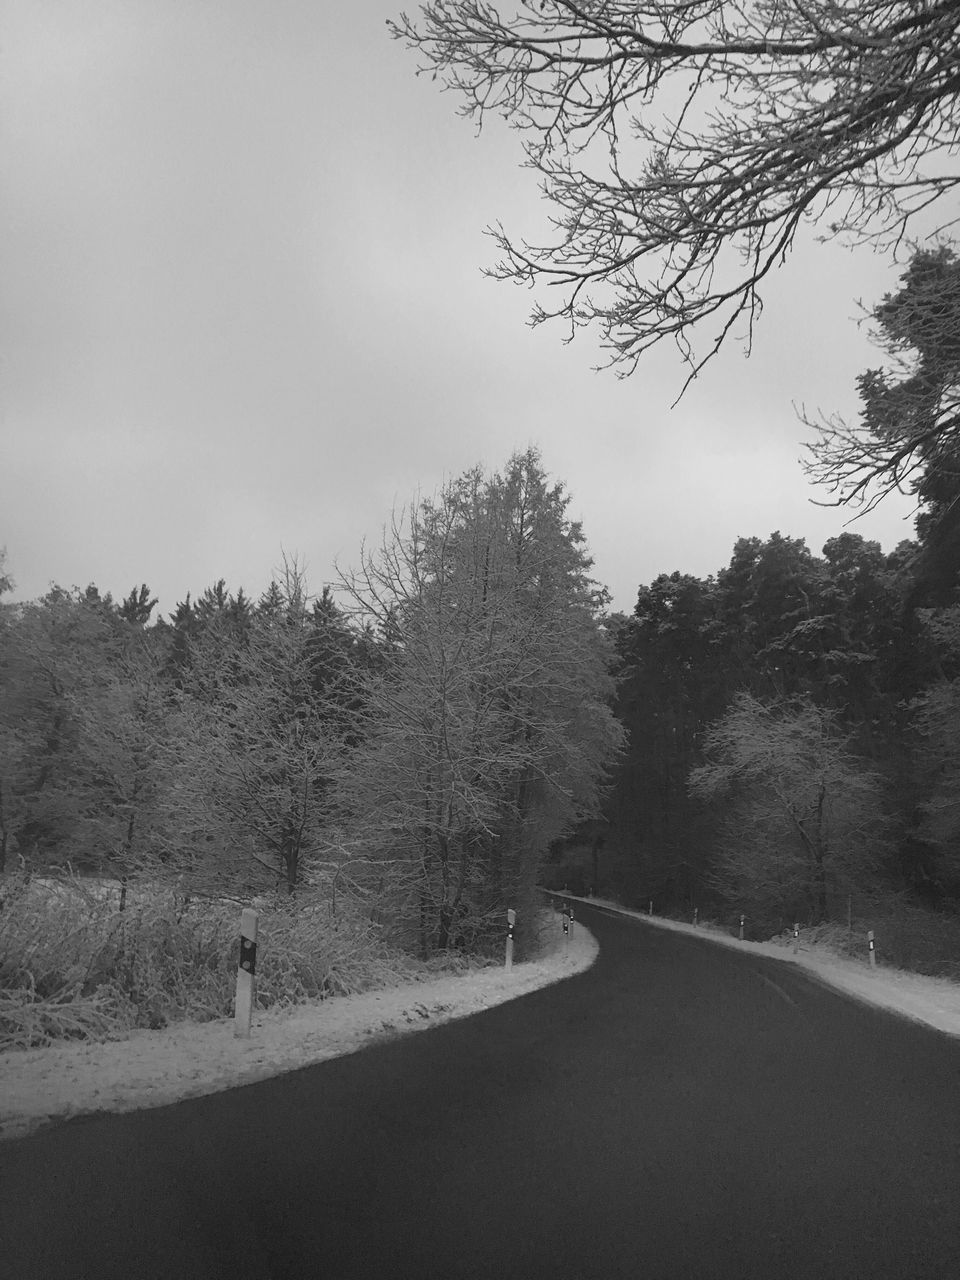 tree, plant, road, sky, transportation, the way forward, direction, nature, tranquility, no people, beauty in nature, growth, tranquil scene, day, land, scenics - nature, outdoors, non-urban scene, landscape